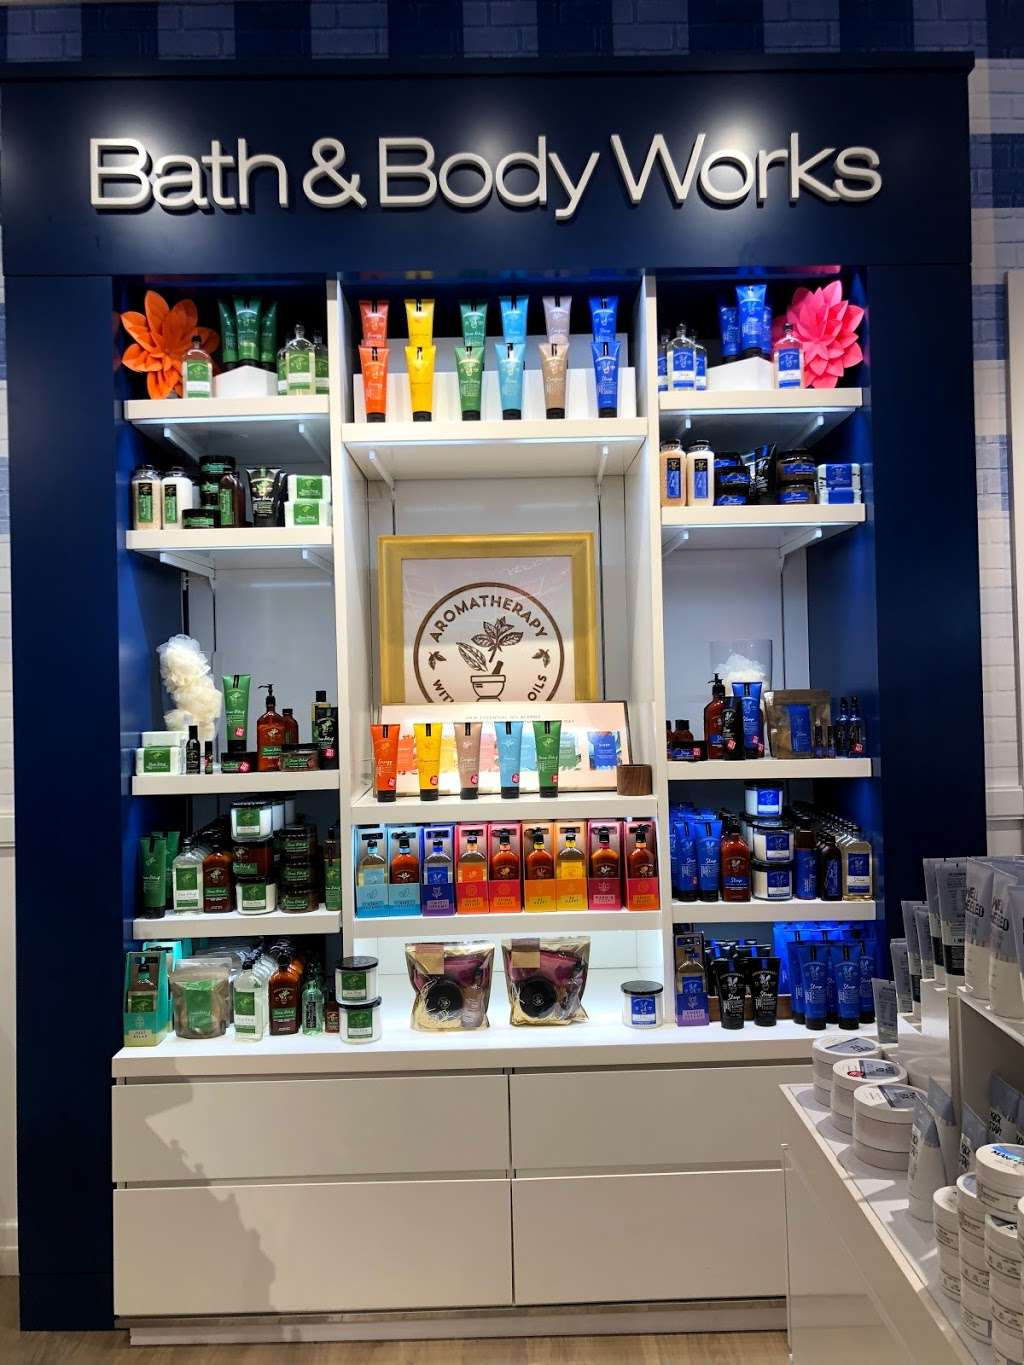 Bath & Body Works - home goods store  | Photo 9 of 10 | Address: 3207 Golf Rd, Delafield, WI 53018, USA | Phone: (262) 646-2003